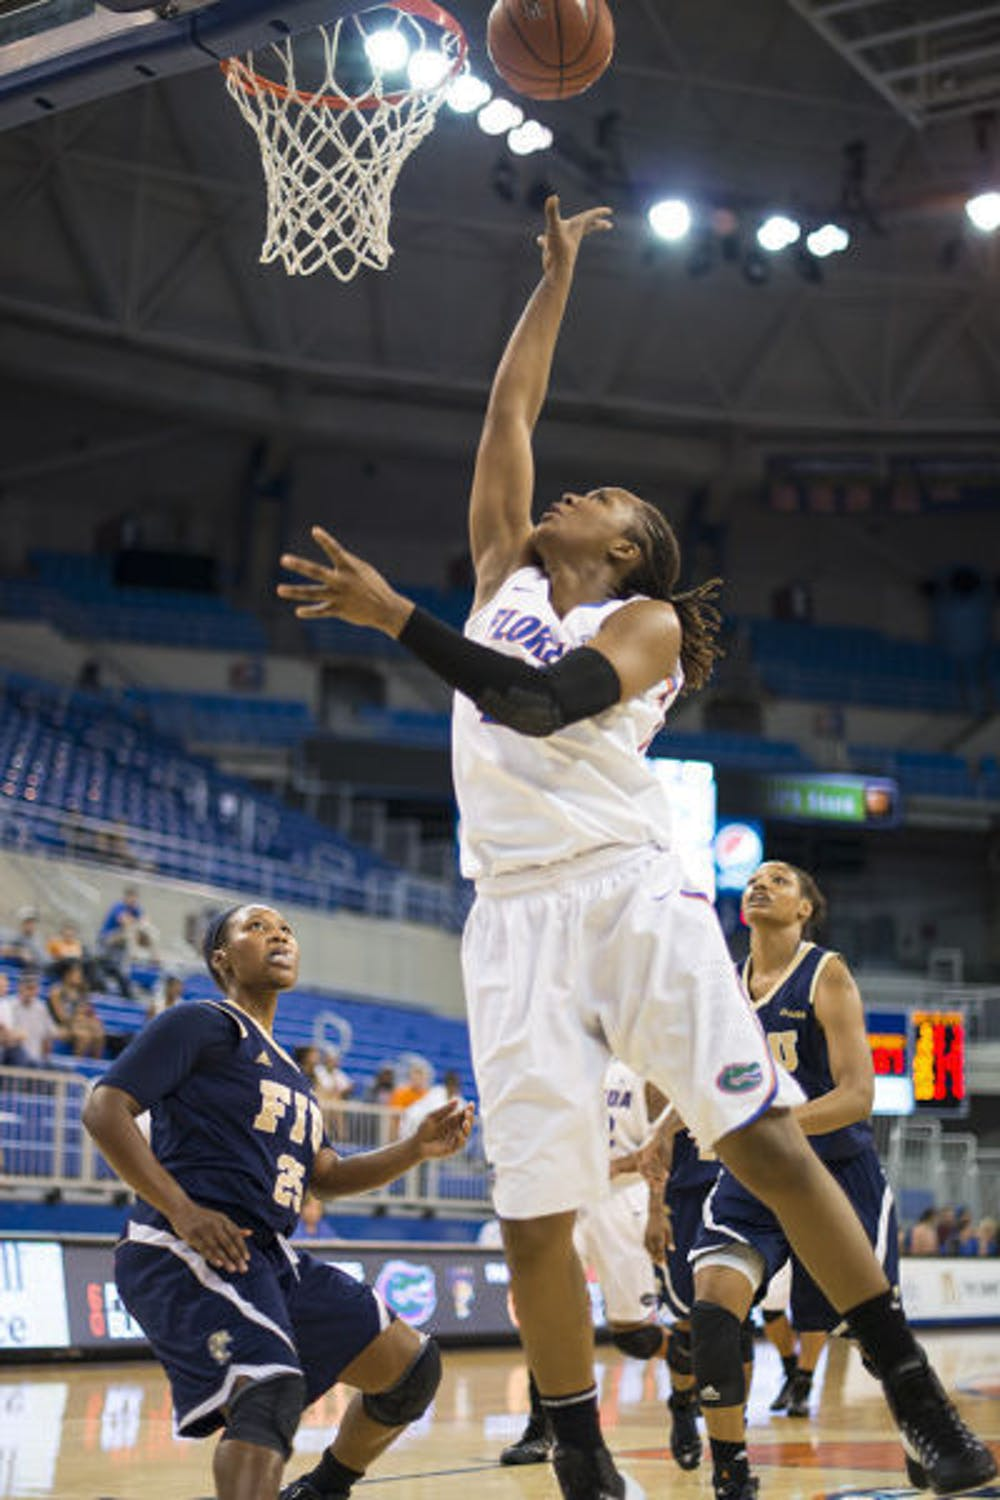 <p>Sophomore Christin Mercer scores two of her career-high 31 points on a layup during Florida's 90-74 win over FIU on Dec. 21 at the O'Connell Center. The Gators claimed their fourth straight Gator Holiday Classic championship.</p>